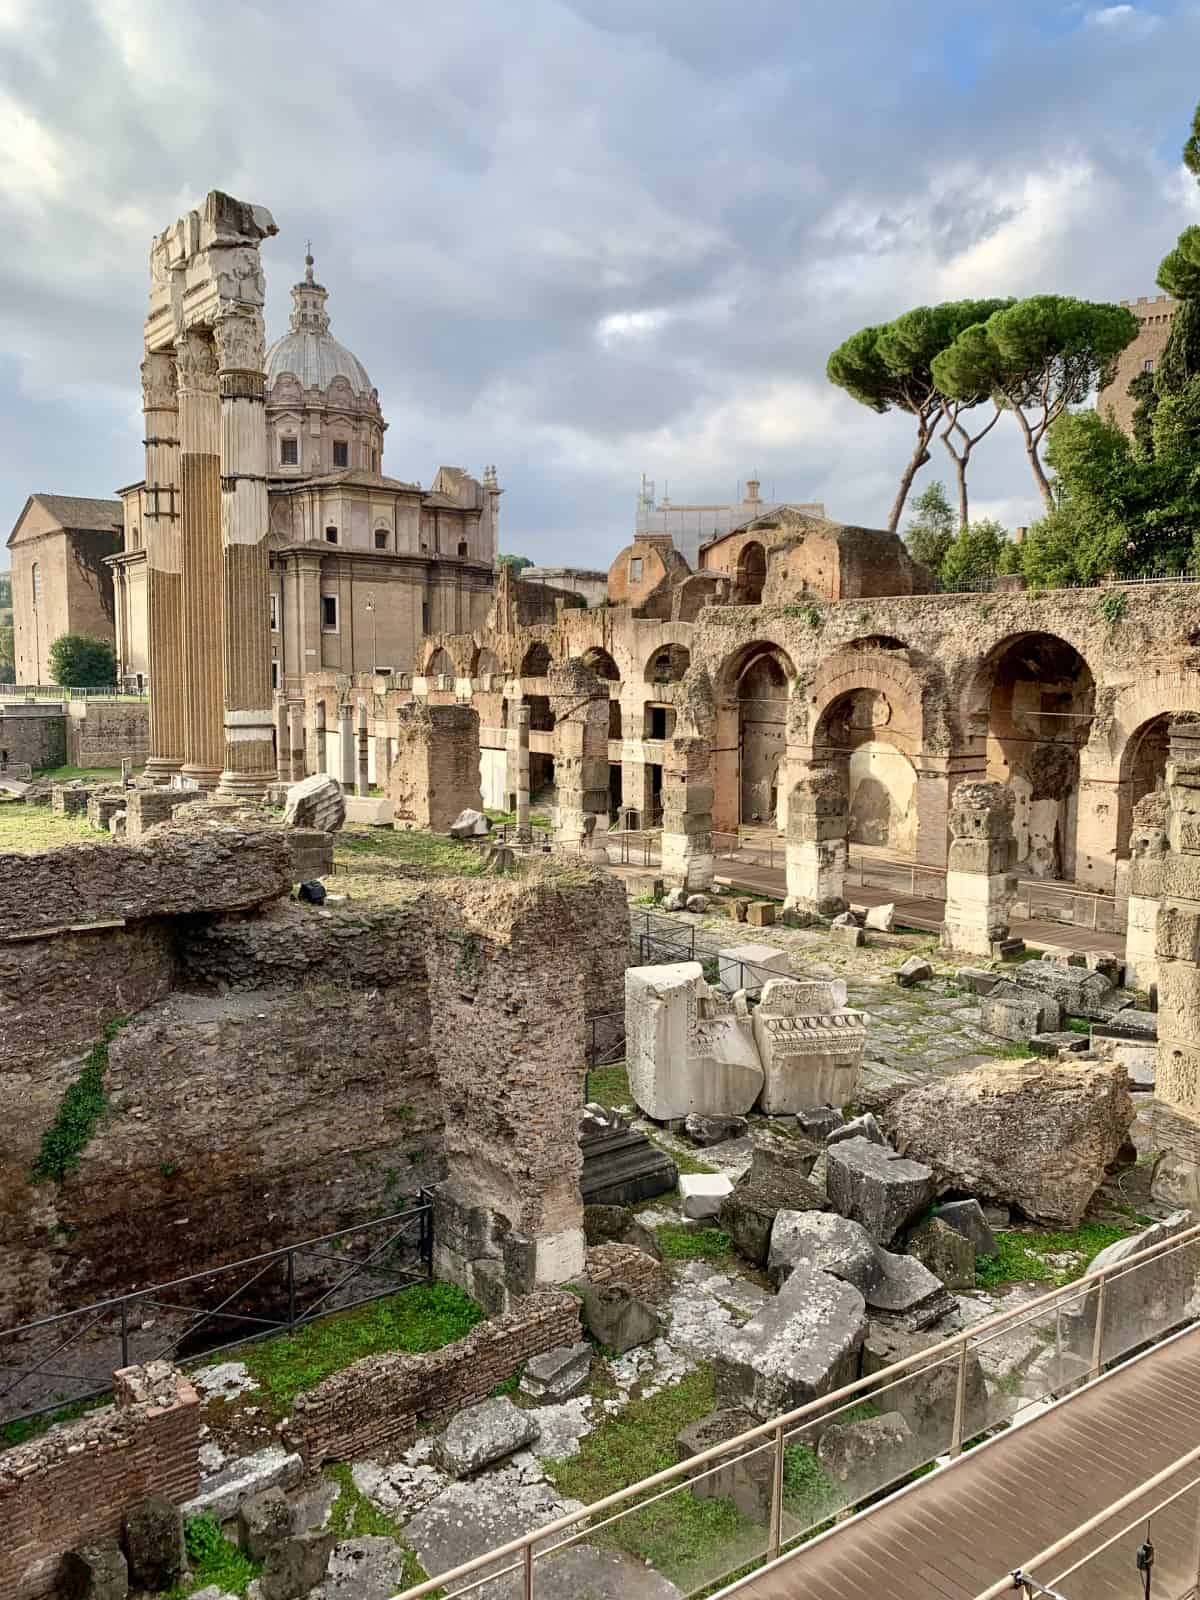 Things to do in Rome - the Roman Forum is worth exploring